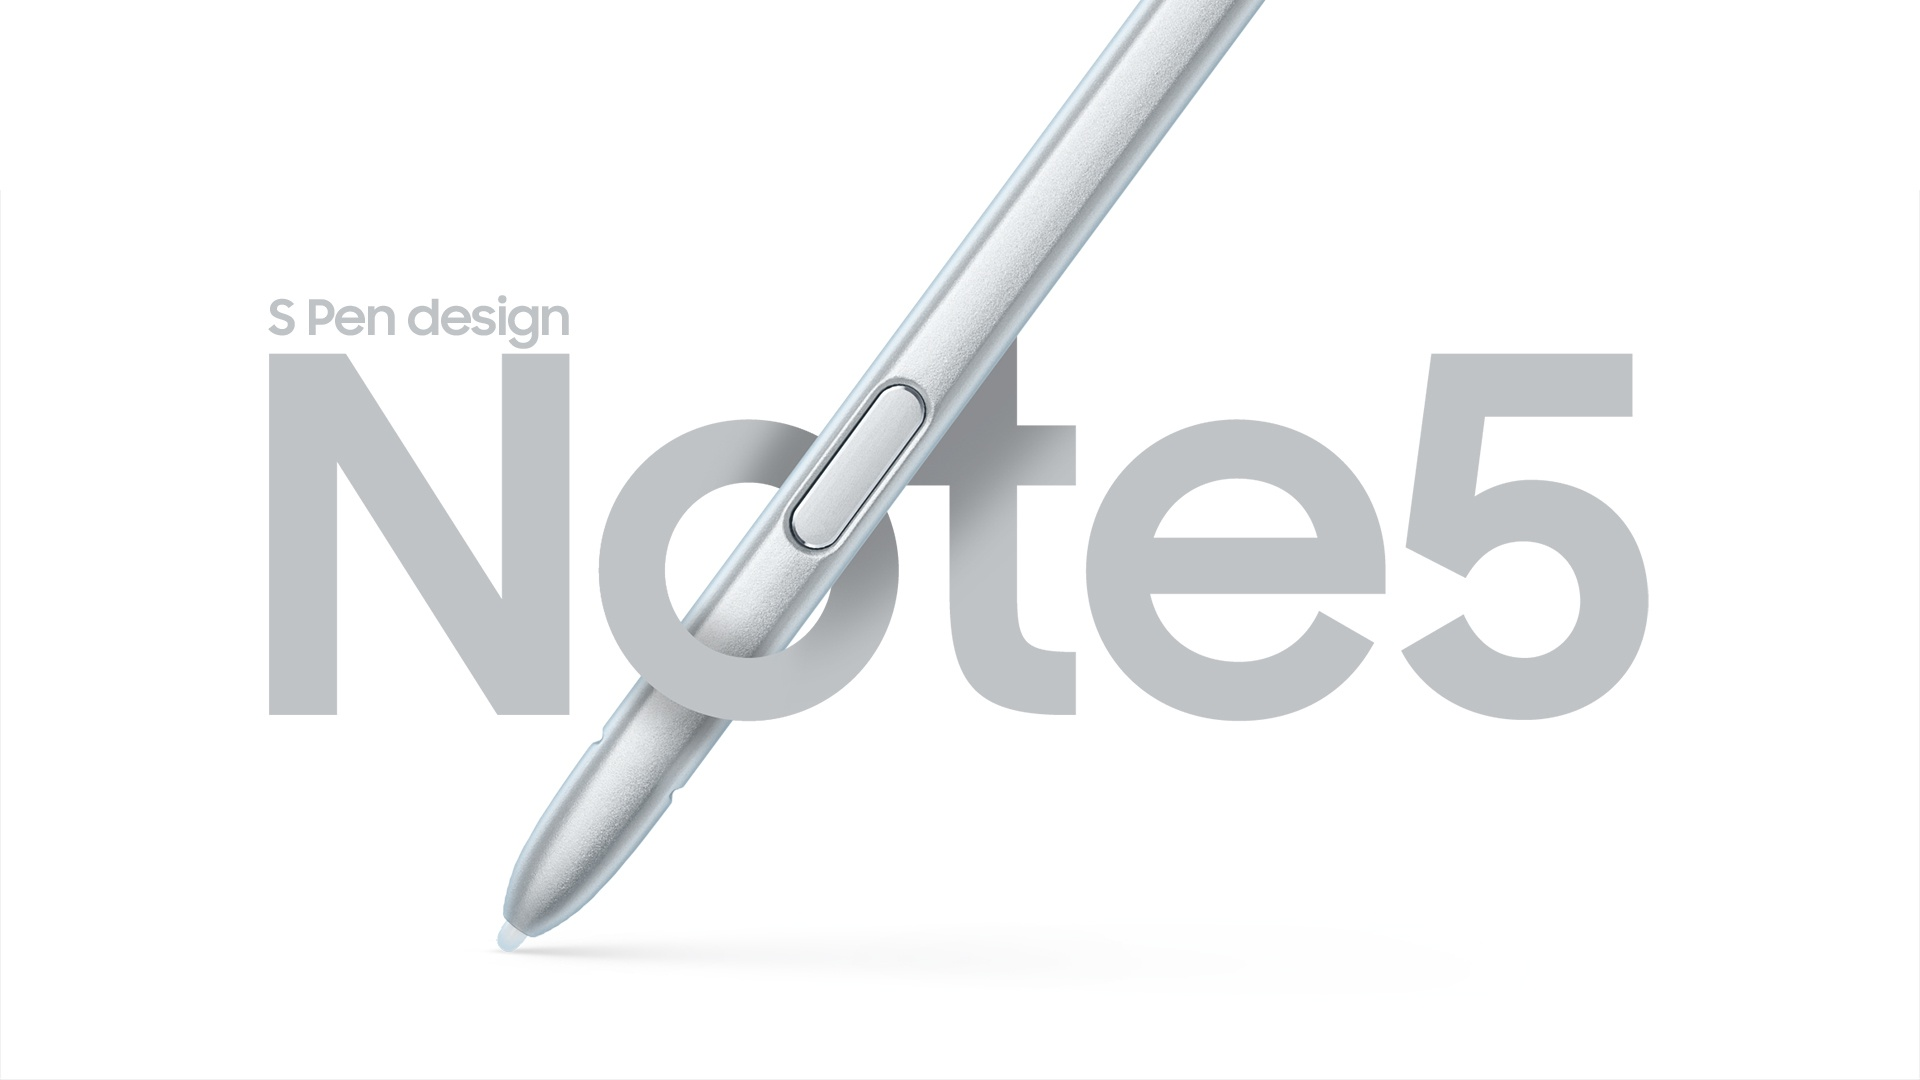 galaxy-note5-design-feature-spencx.jpg